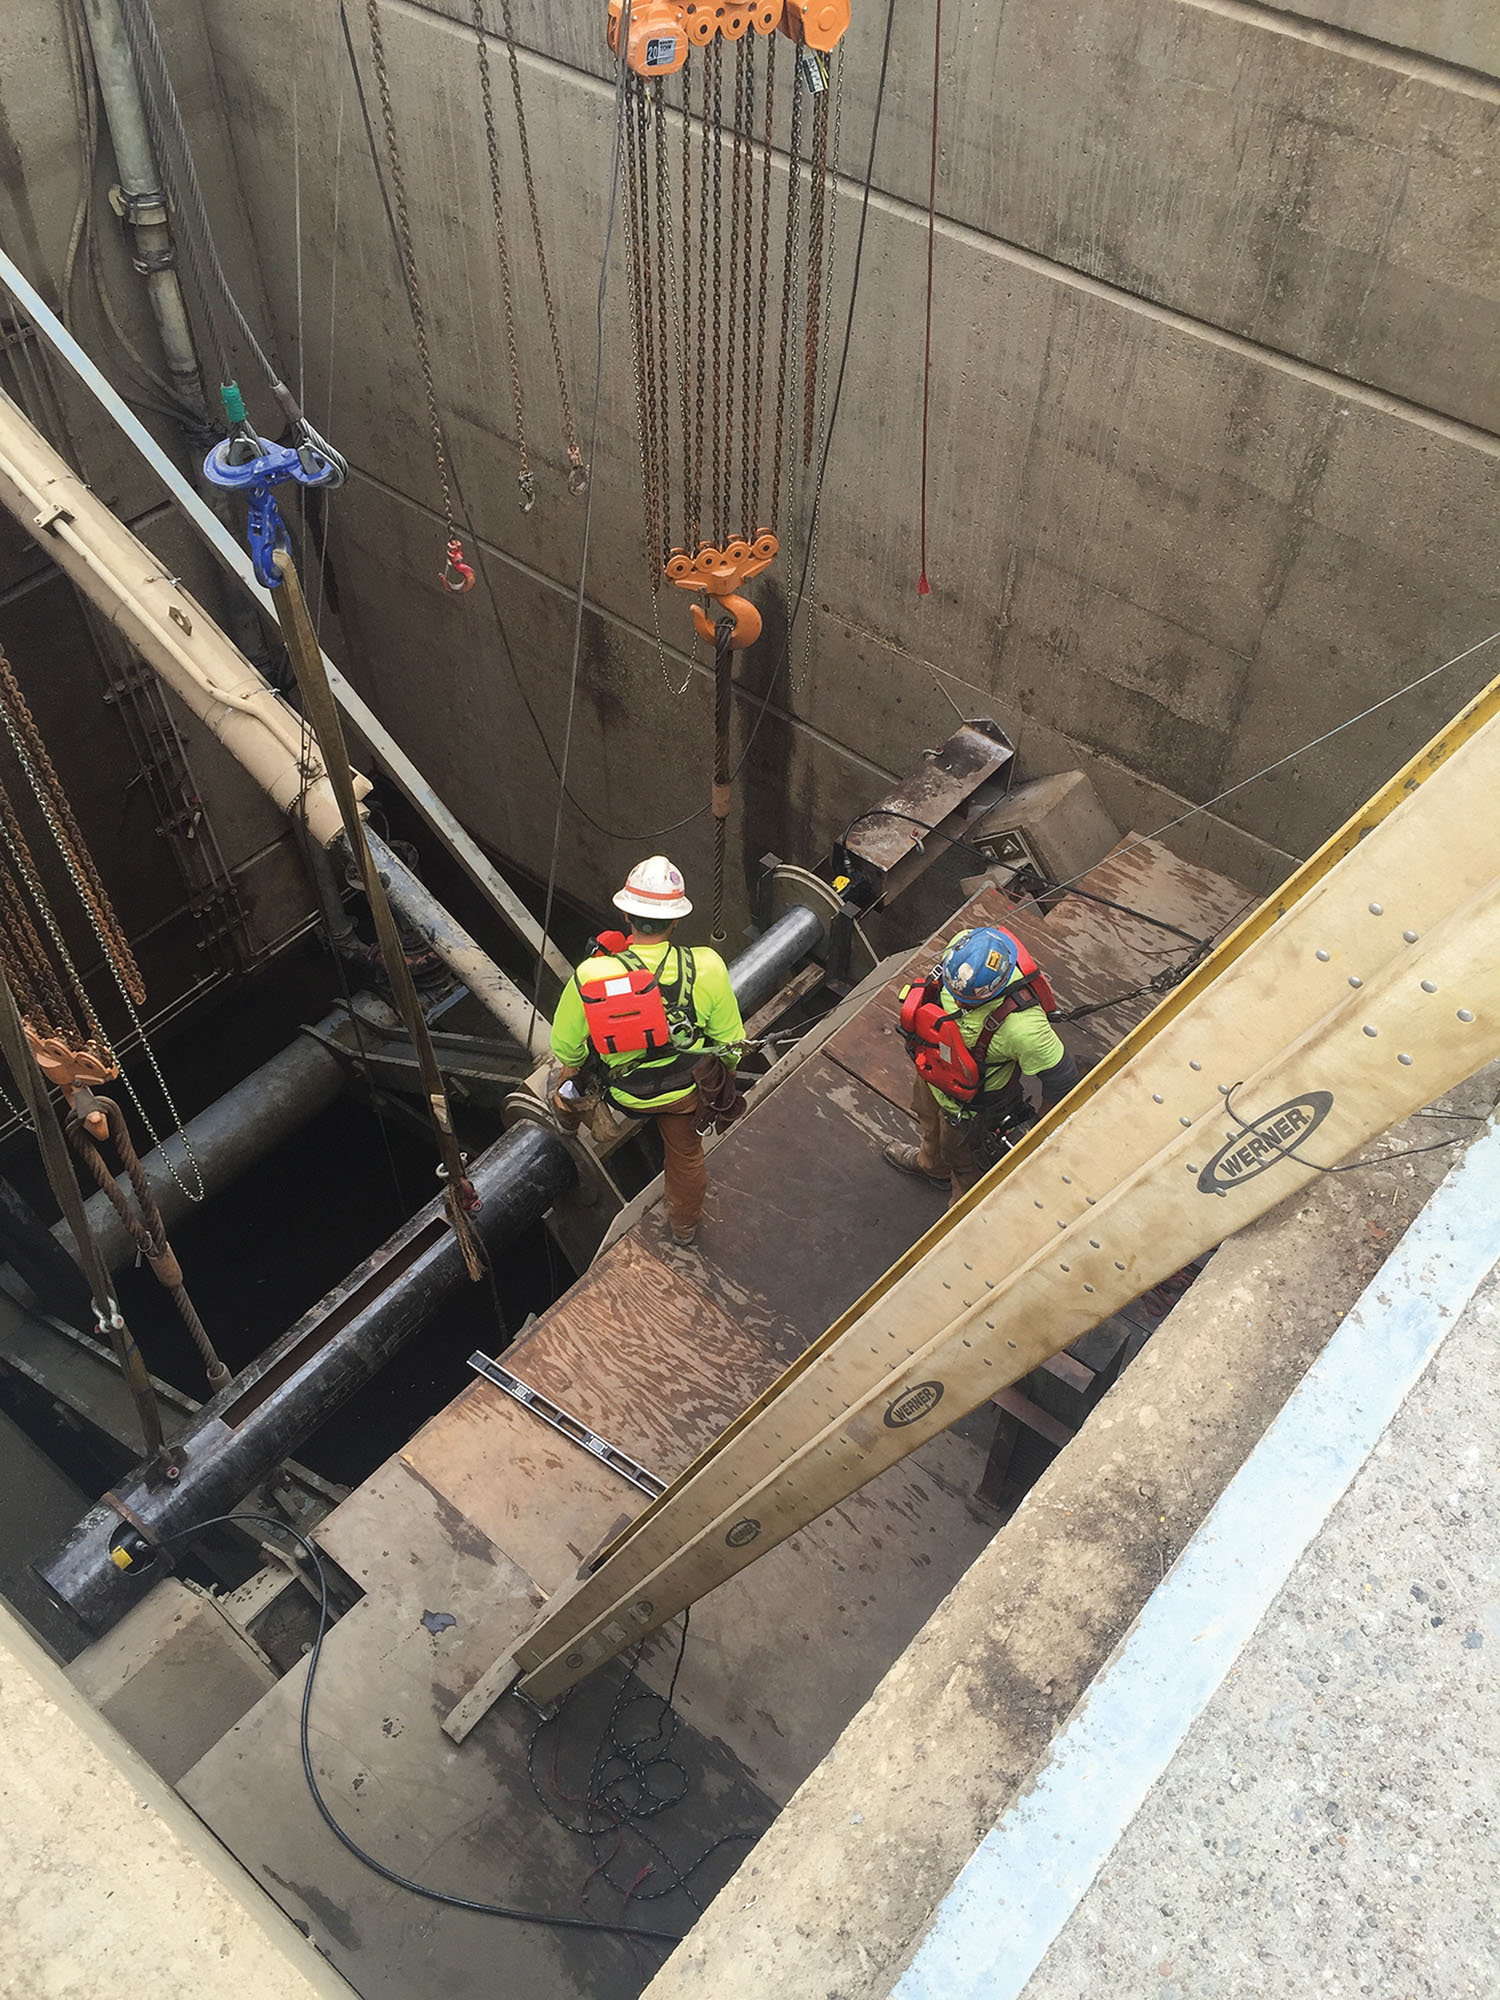 C.J. Mahan Construction Company completed several projects at Olmsted from 2014 to 2016. Some of the projects included the replacement of hydraulic cylinders on eight miter gates and culvert valves in the lock chambers and the installation of an automated control system for locking operations.